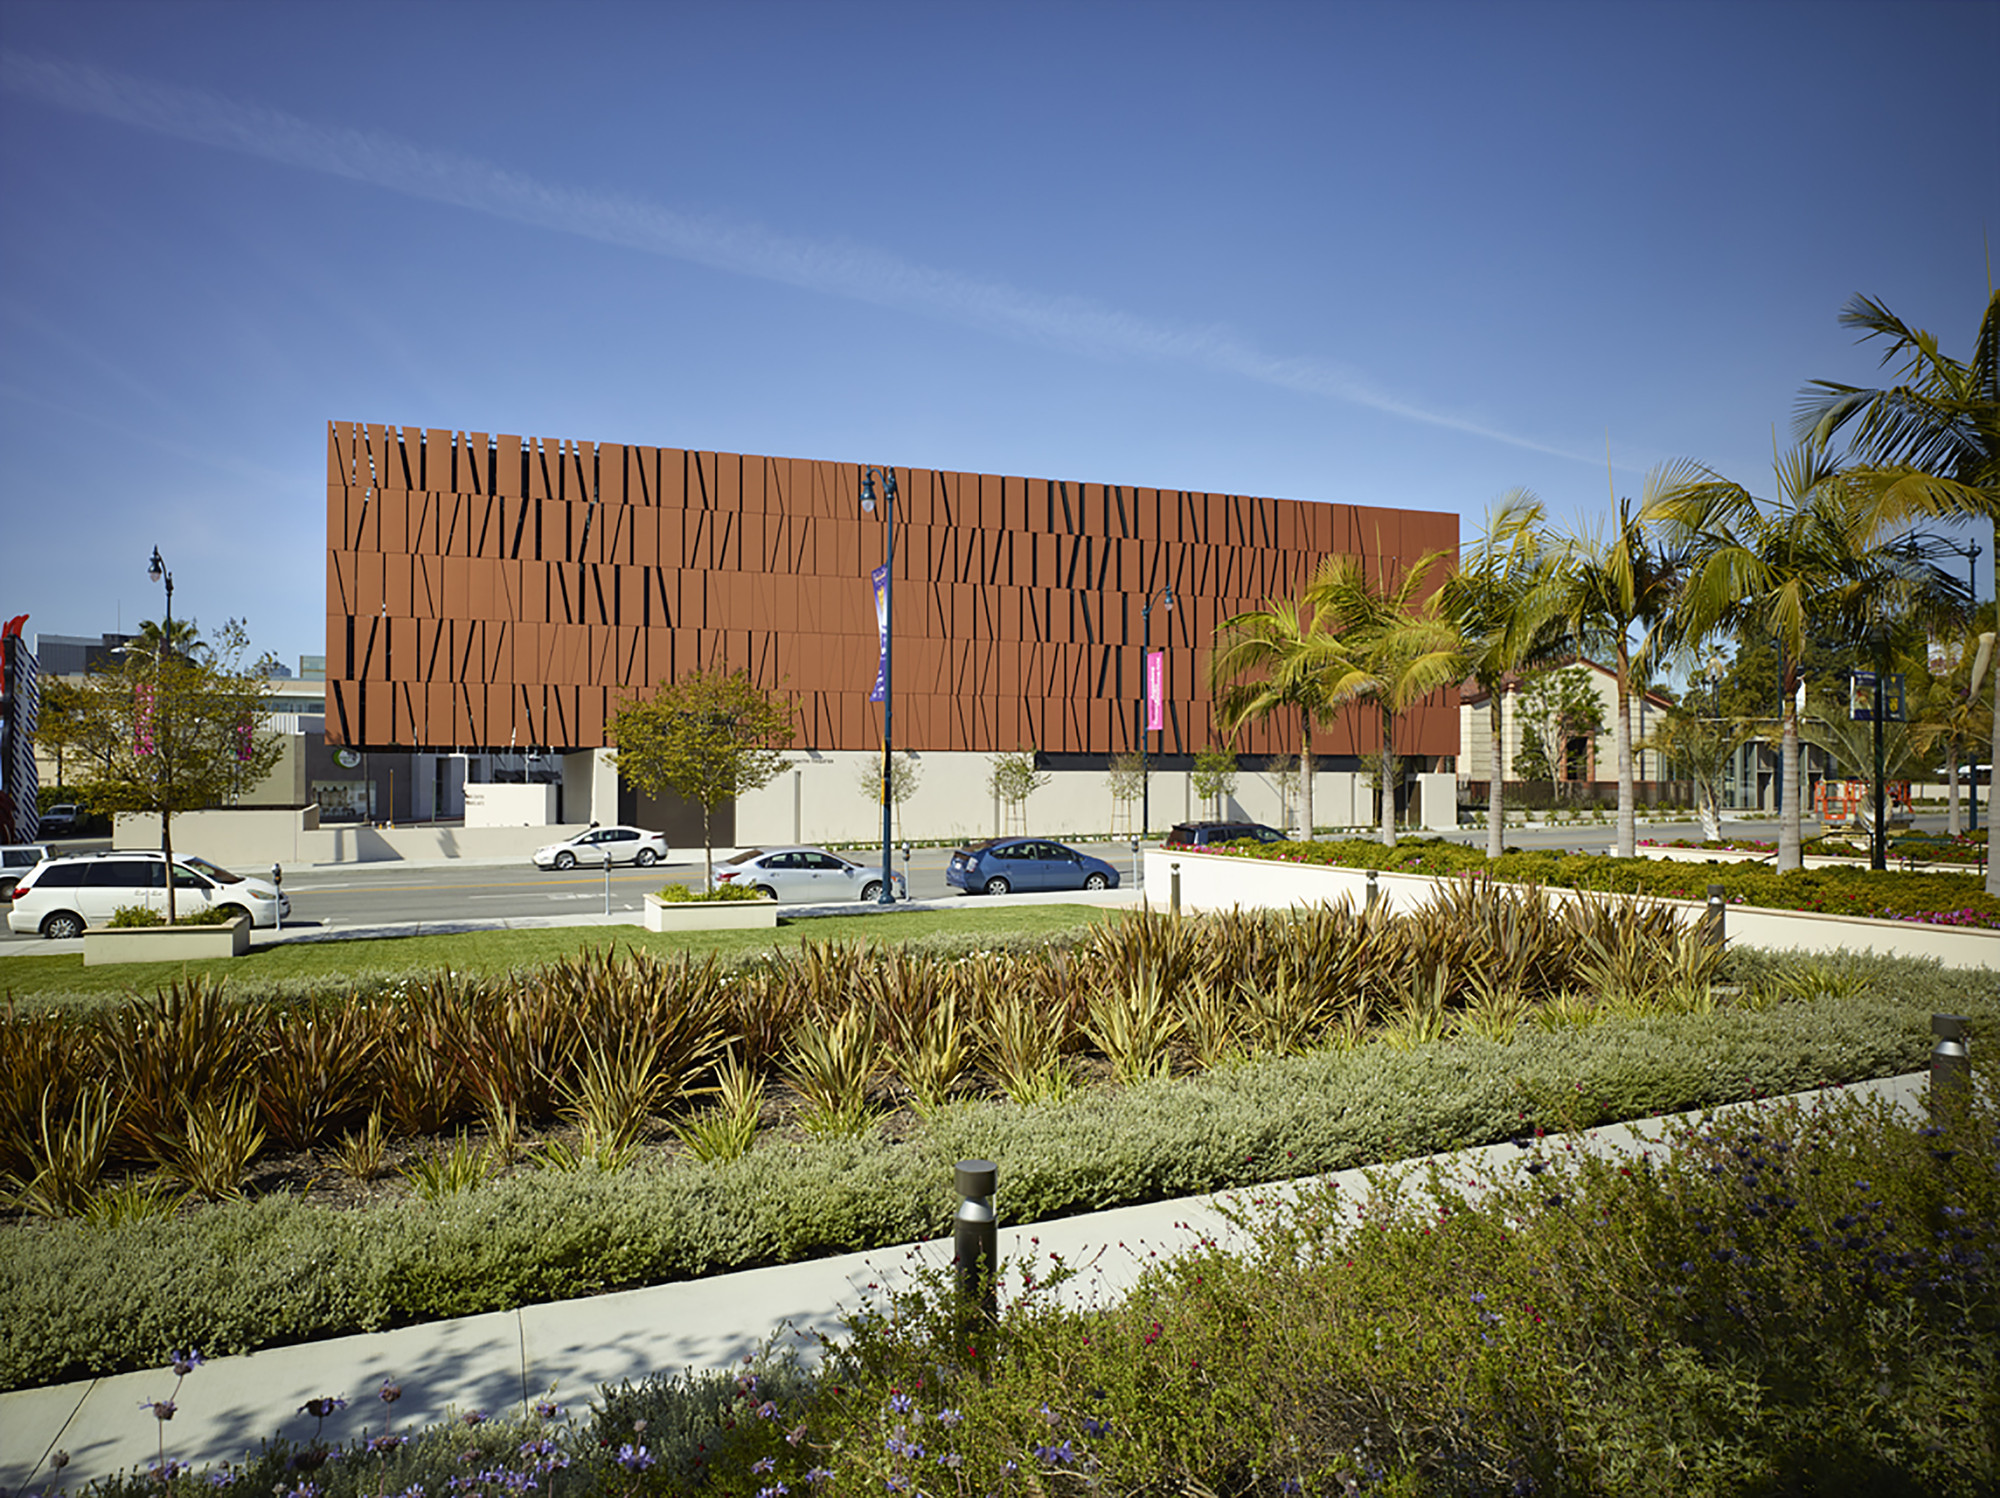 The Wallis Annenberg Center for the Performing Arts / Studio Pali Fekete architects, © John Edward Linden Photography